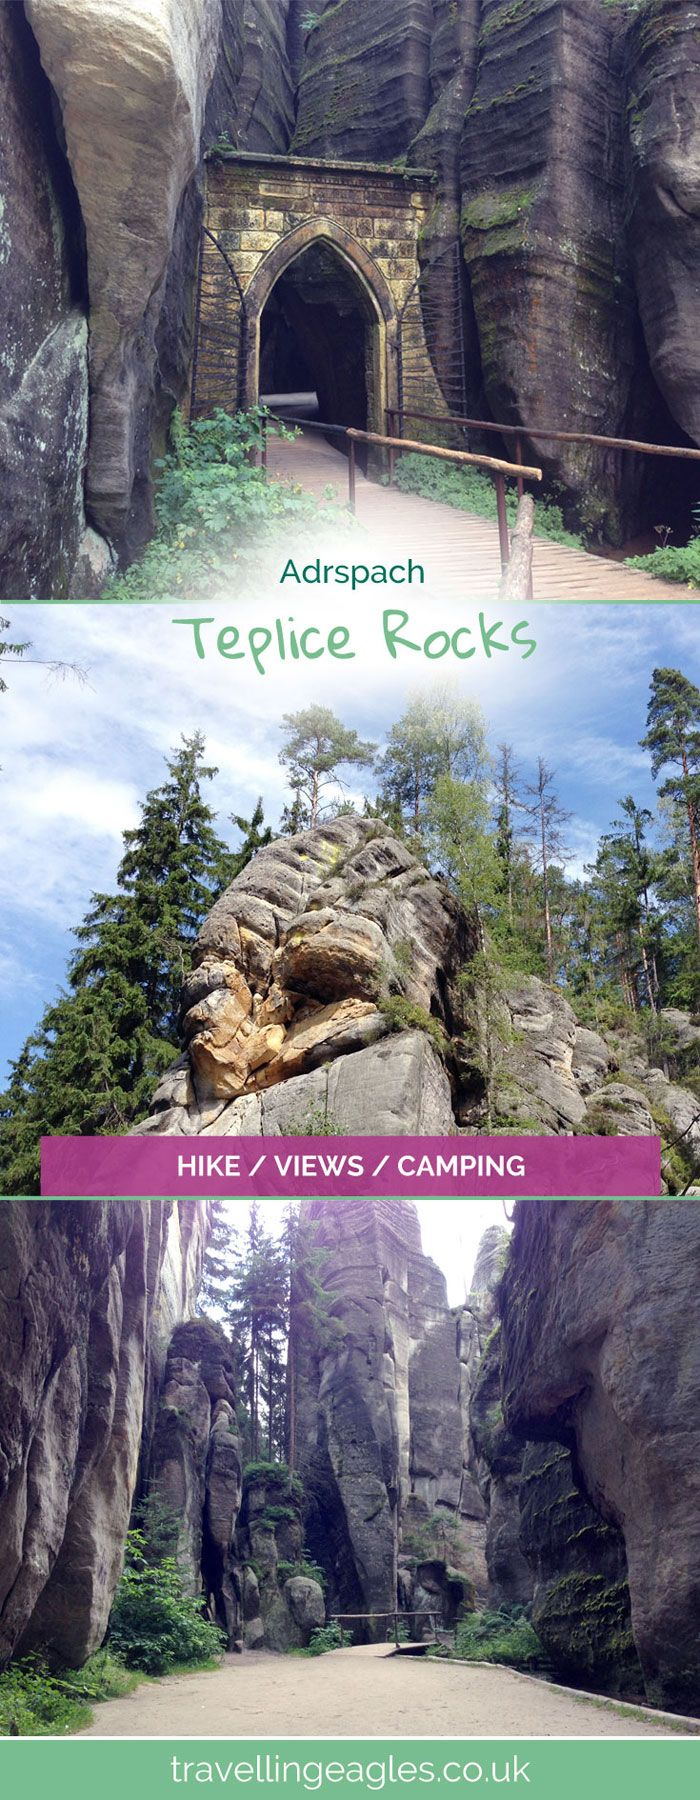 Teplice Rocks Adršpach - The Real Life Skyrim - The Travelling Eagles